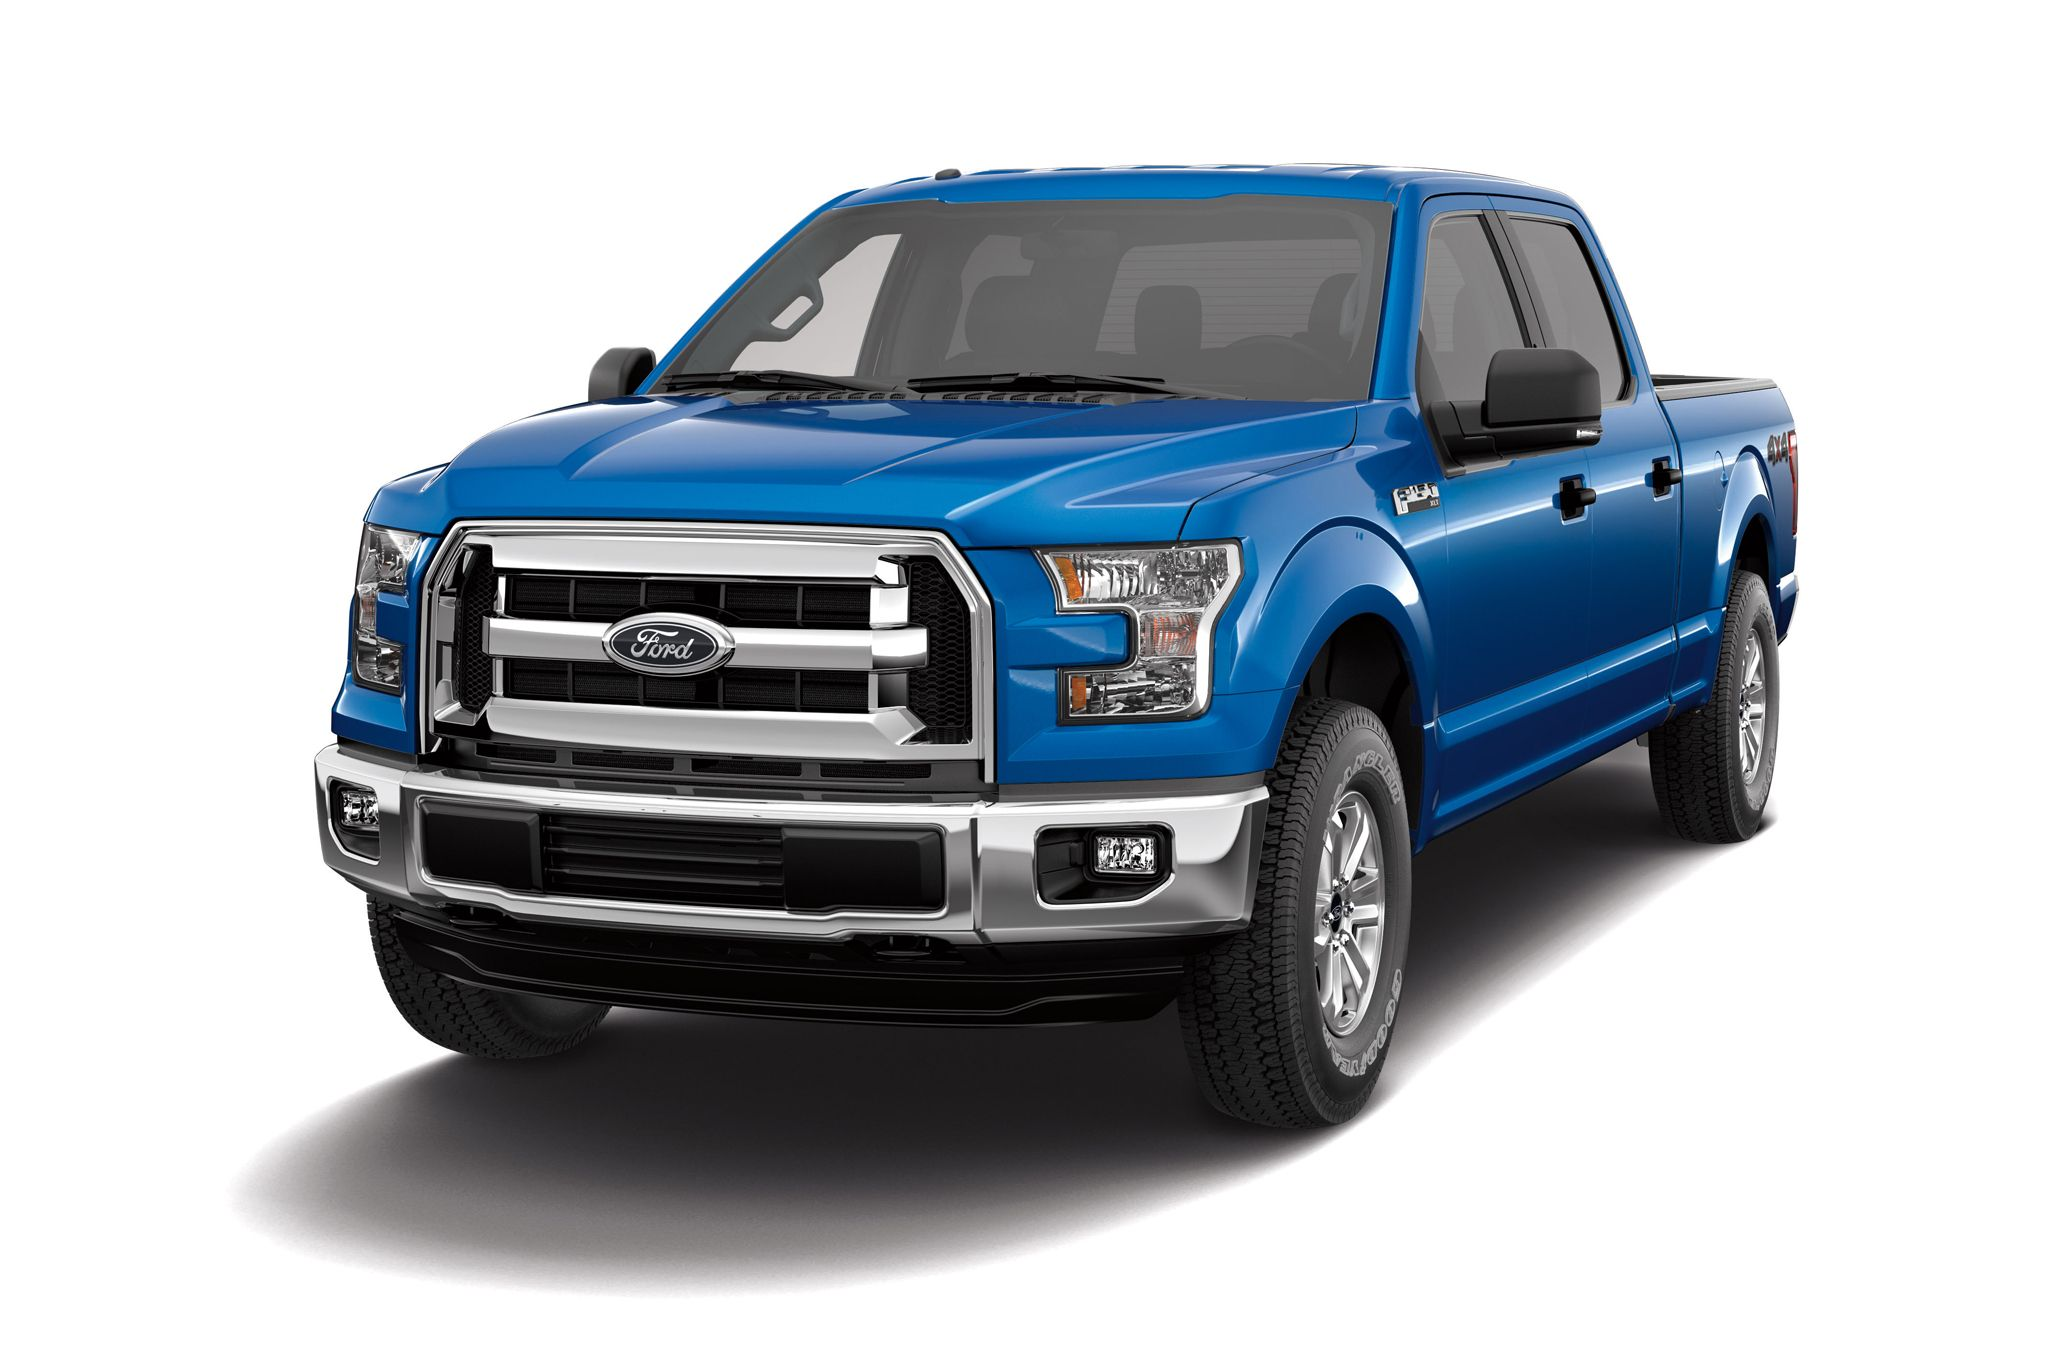 2015 Ford F-150 XLT front view